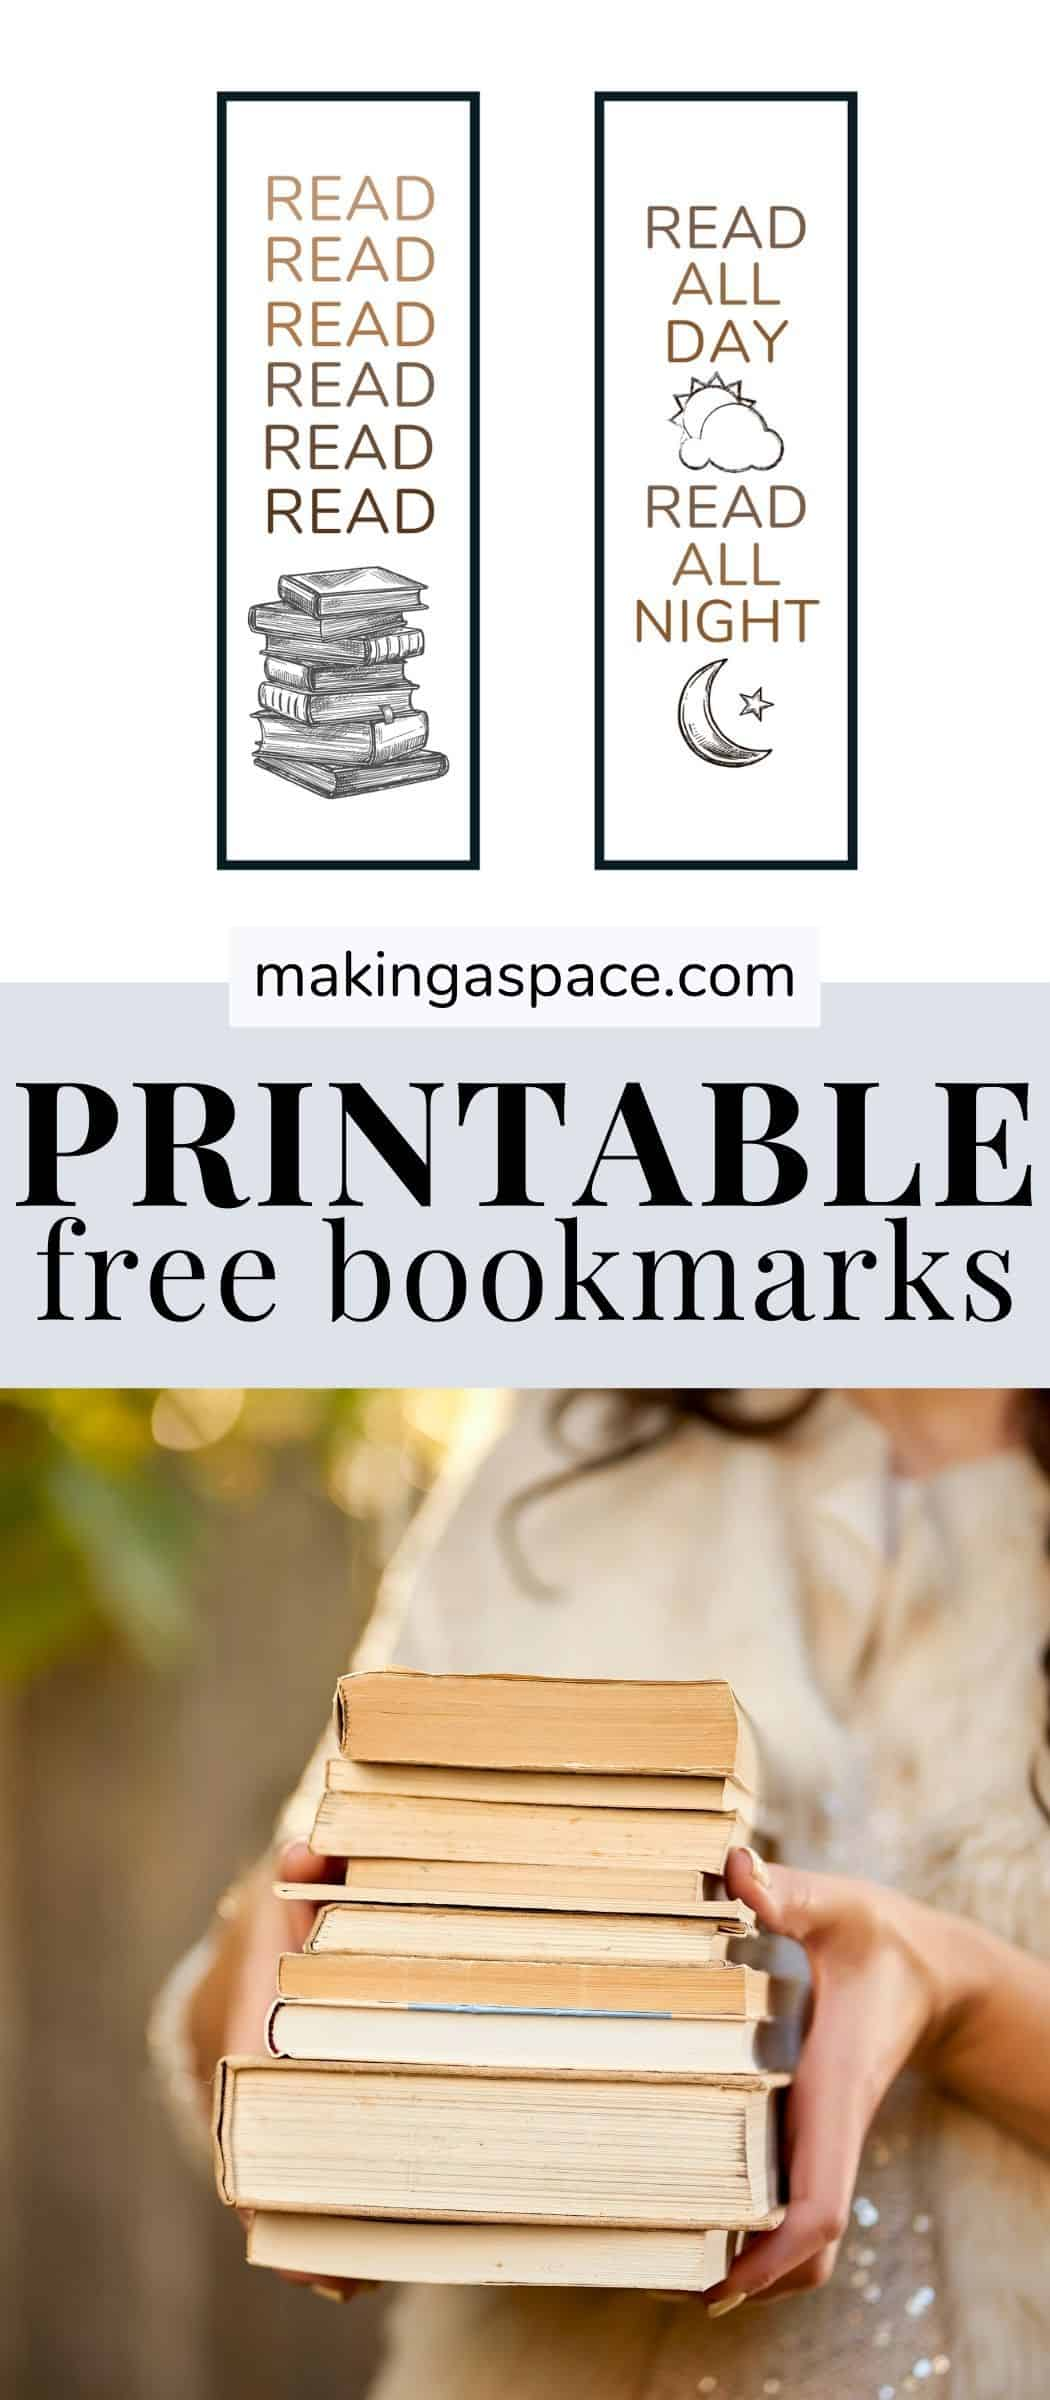 free printable bookmarks PDF